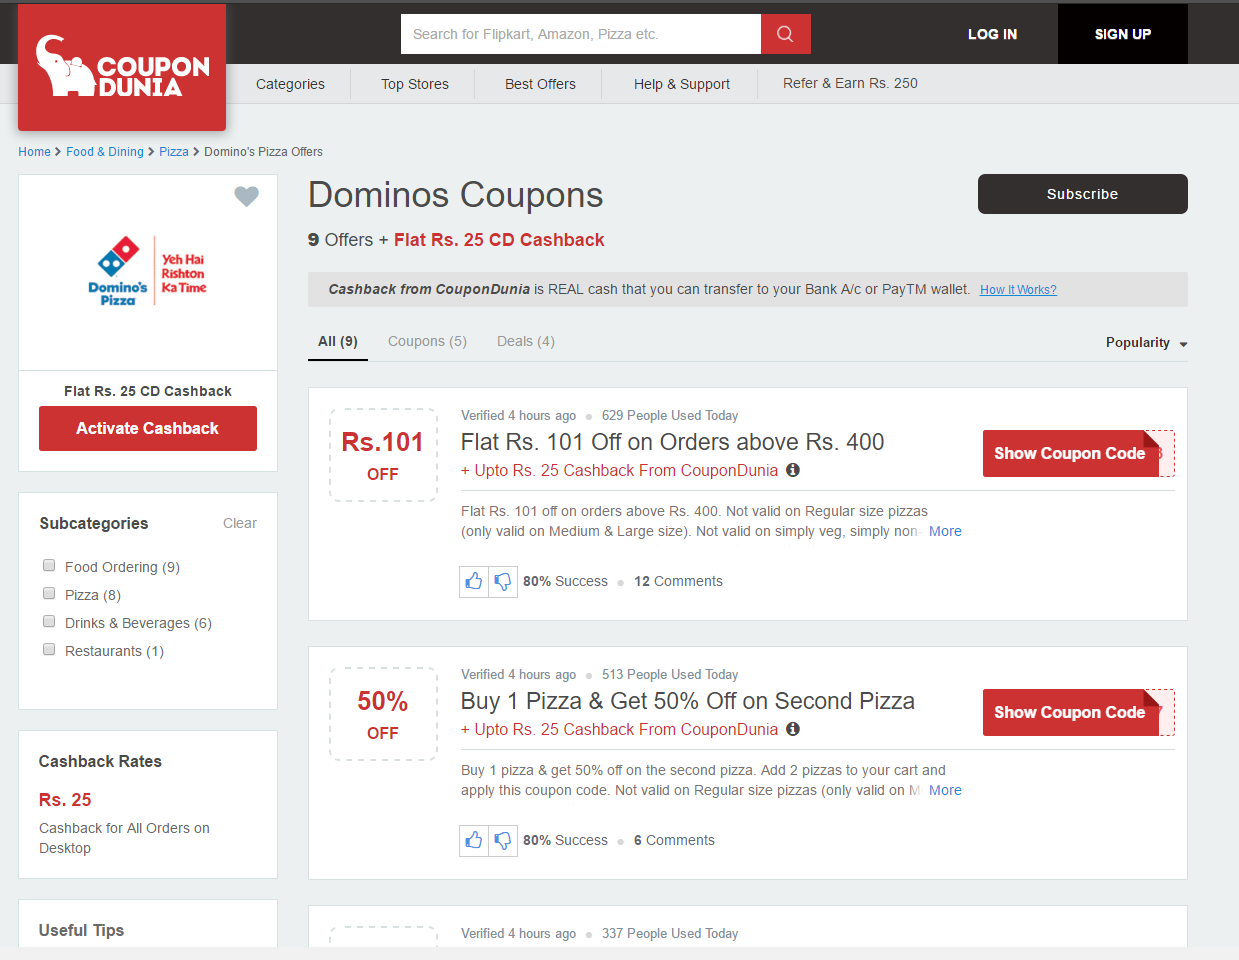 How to redeem coupon on flipkart